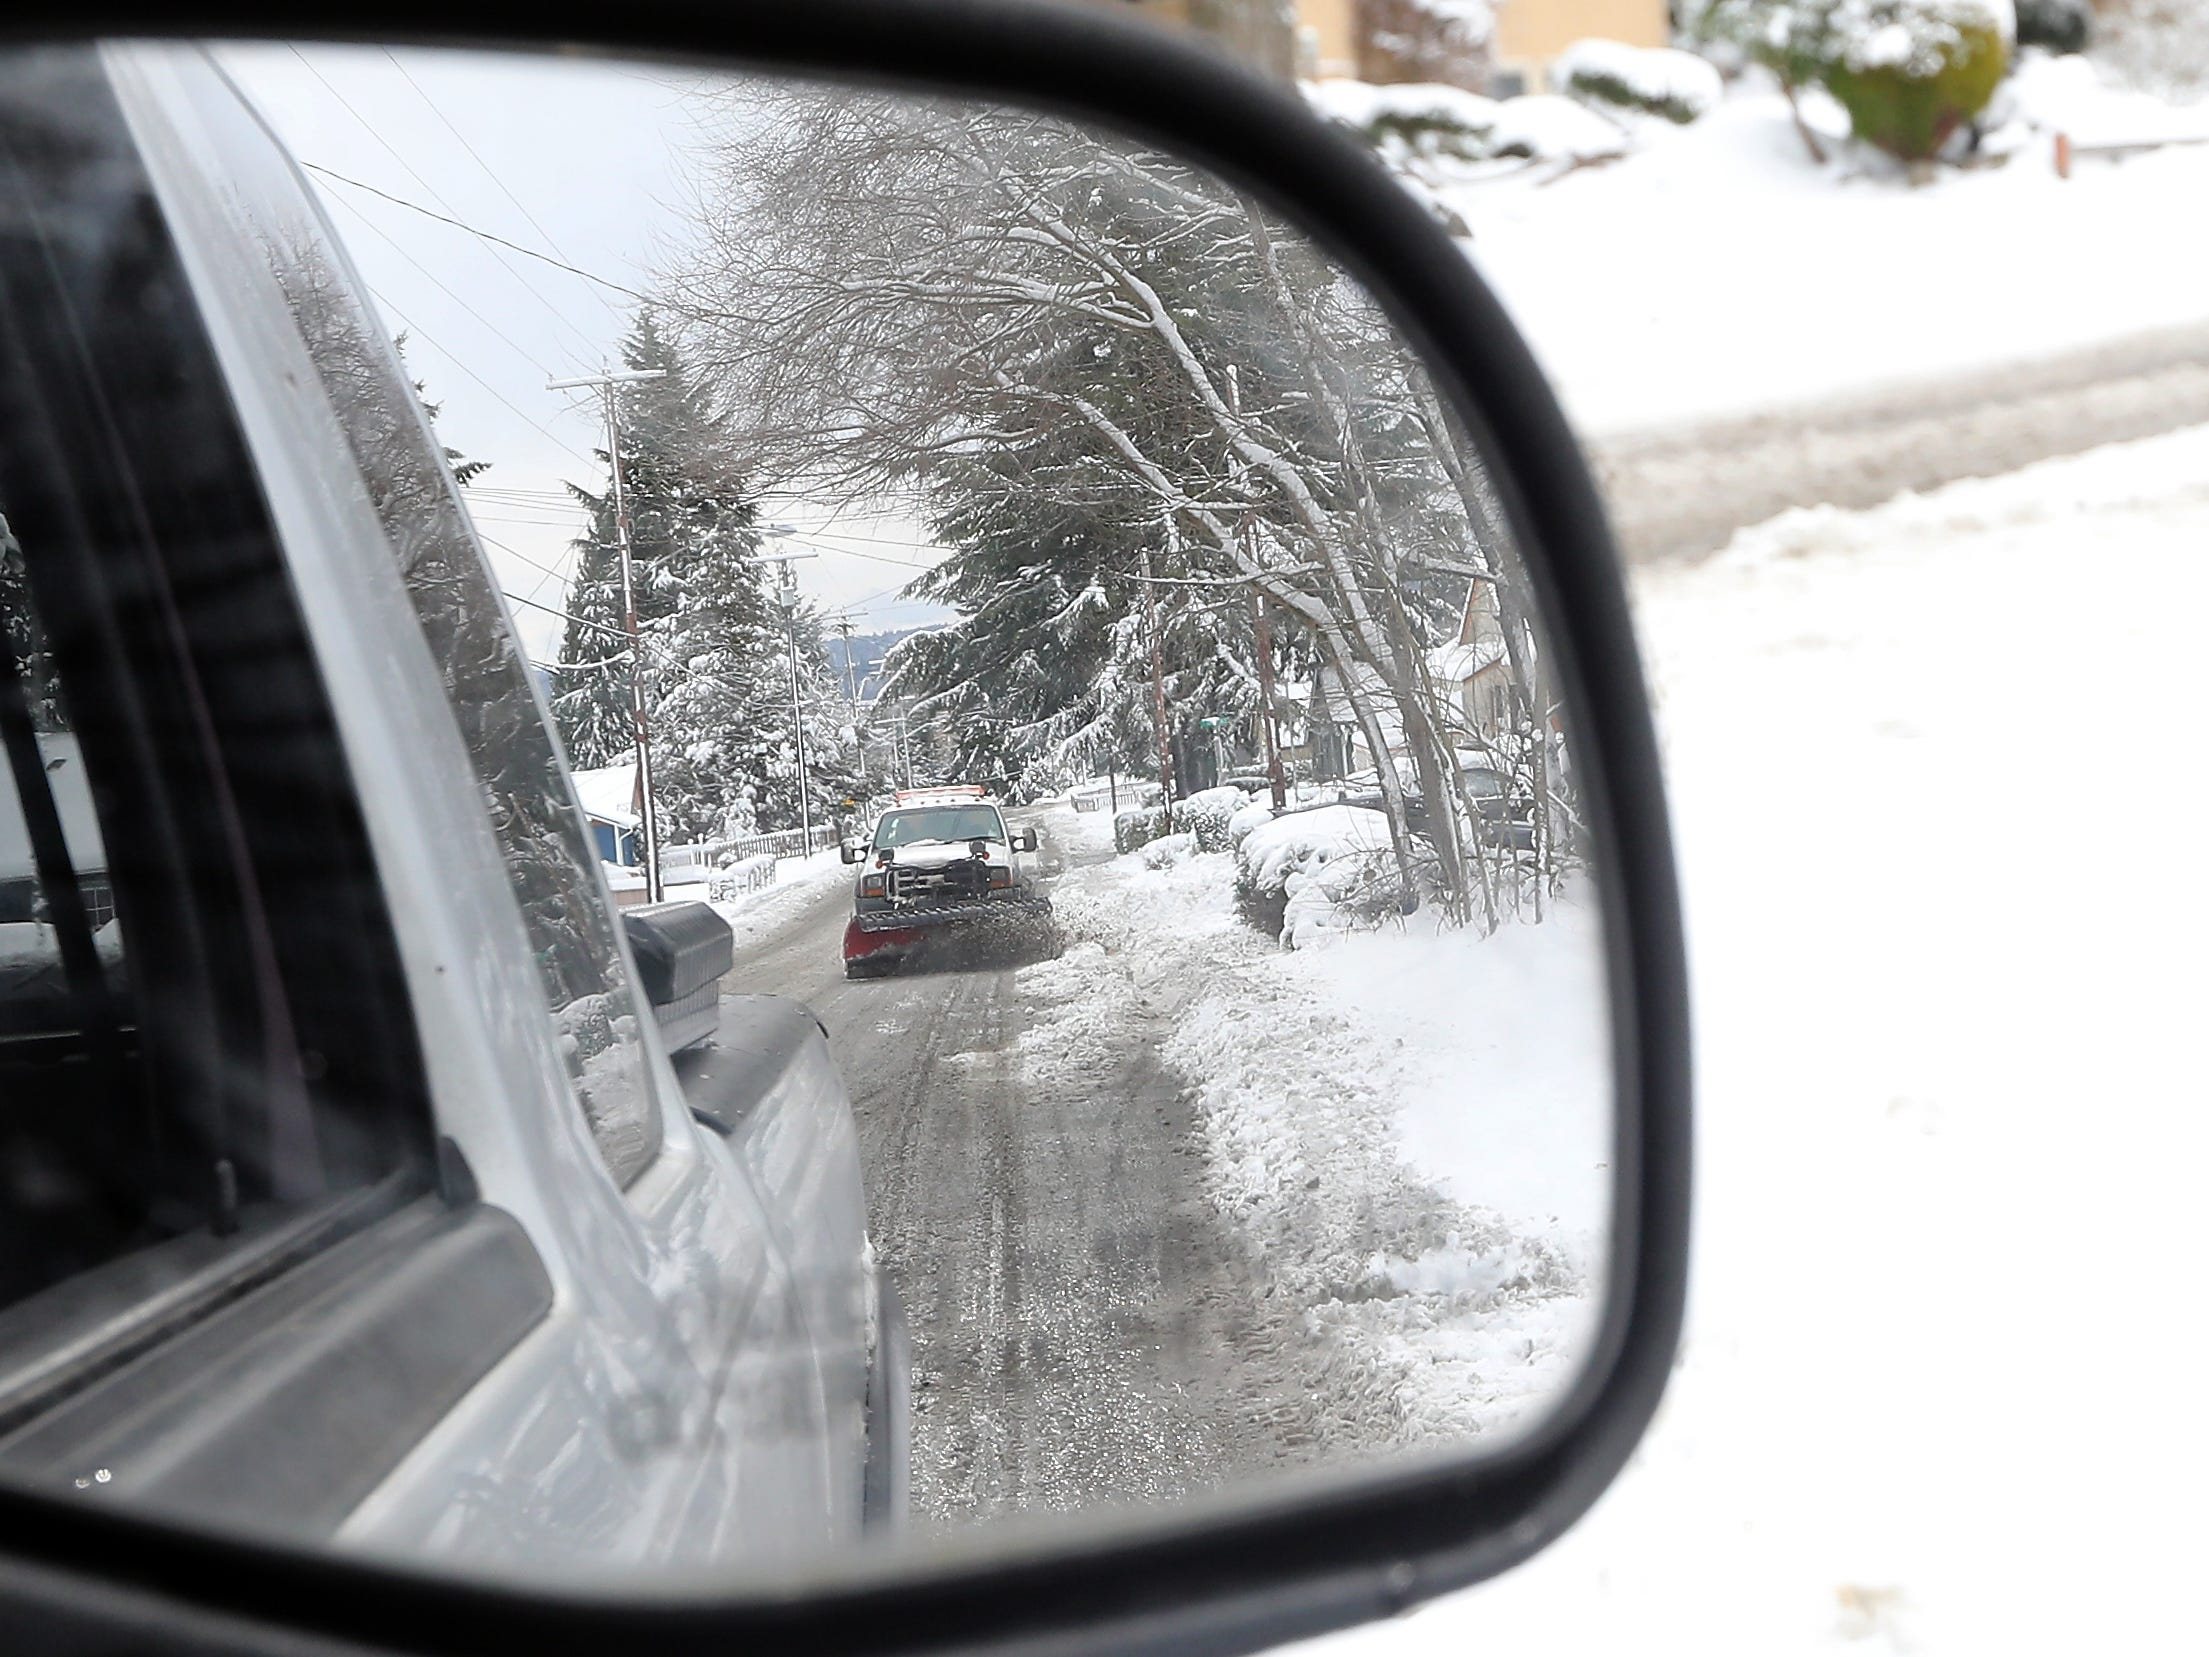 A Bremerton City plow is rejected in a side mirror as it plows Cherry Ave. in Bremerton on Saturday, February 9, 2019.